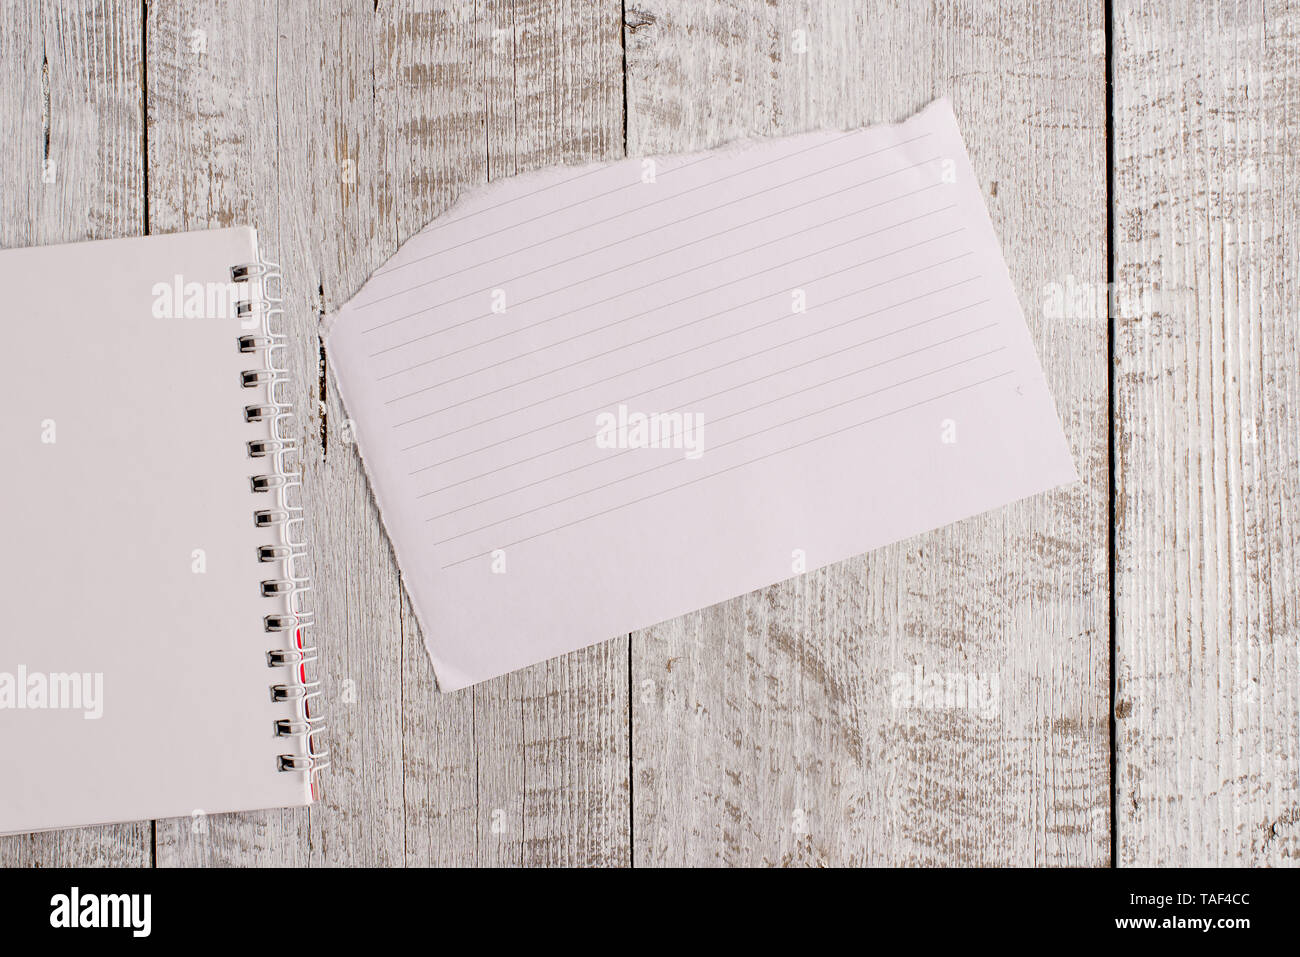 Torn paper and notebook sheet placed on top of a classic wooden table. - Stock Image